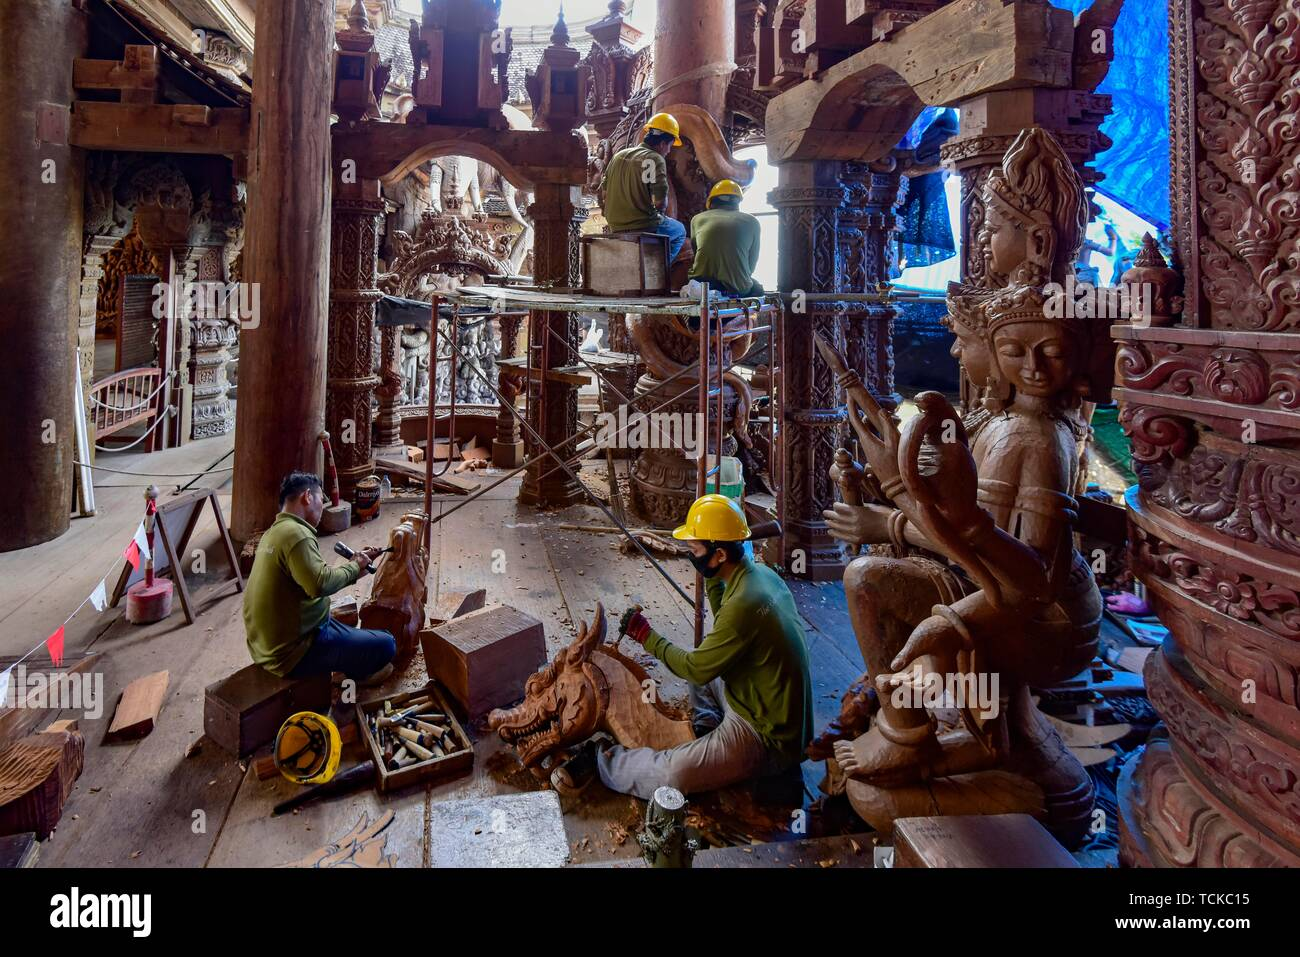 Craftsman carving wooden figures in the Sanctuary of Truth Temple, Pattaya, Thailand - Stock Image